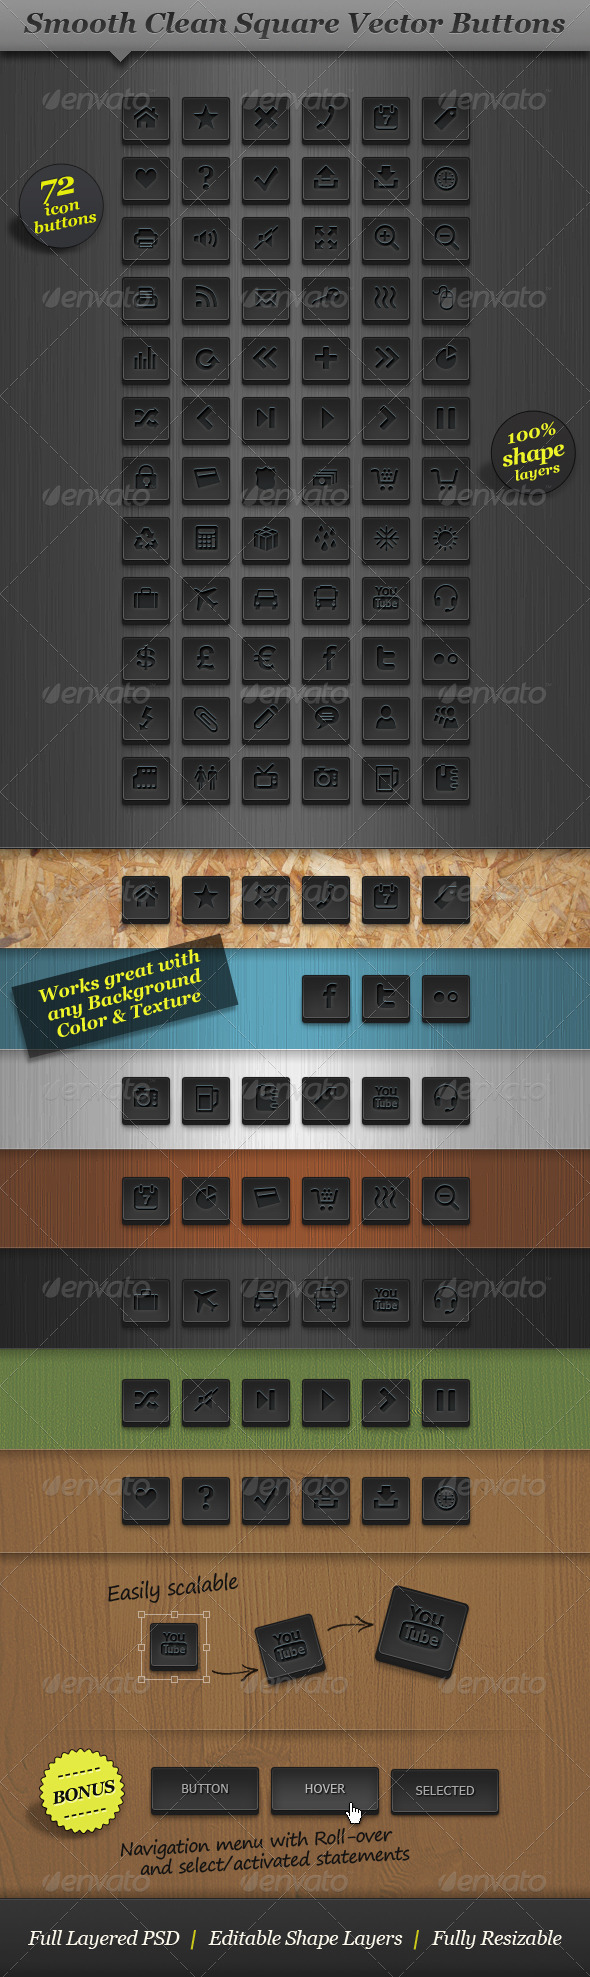 Dark Square Icon Set Vector Web Buttons - Buttons Web Elements